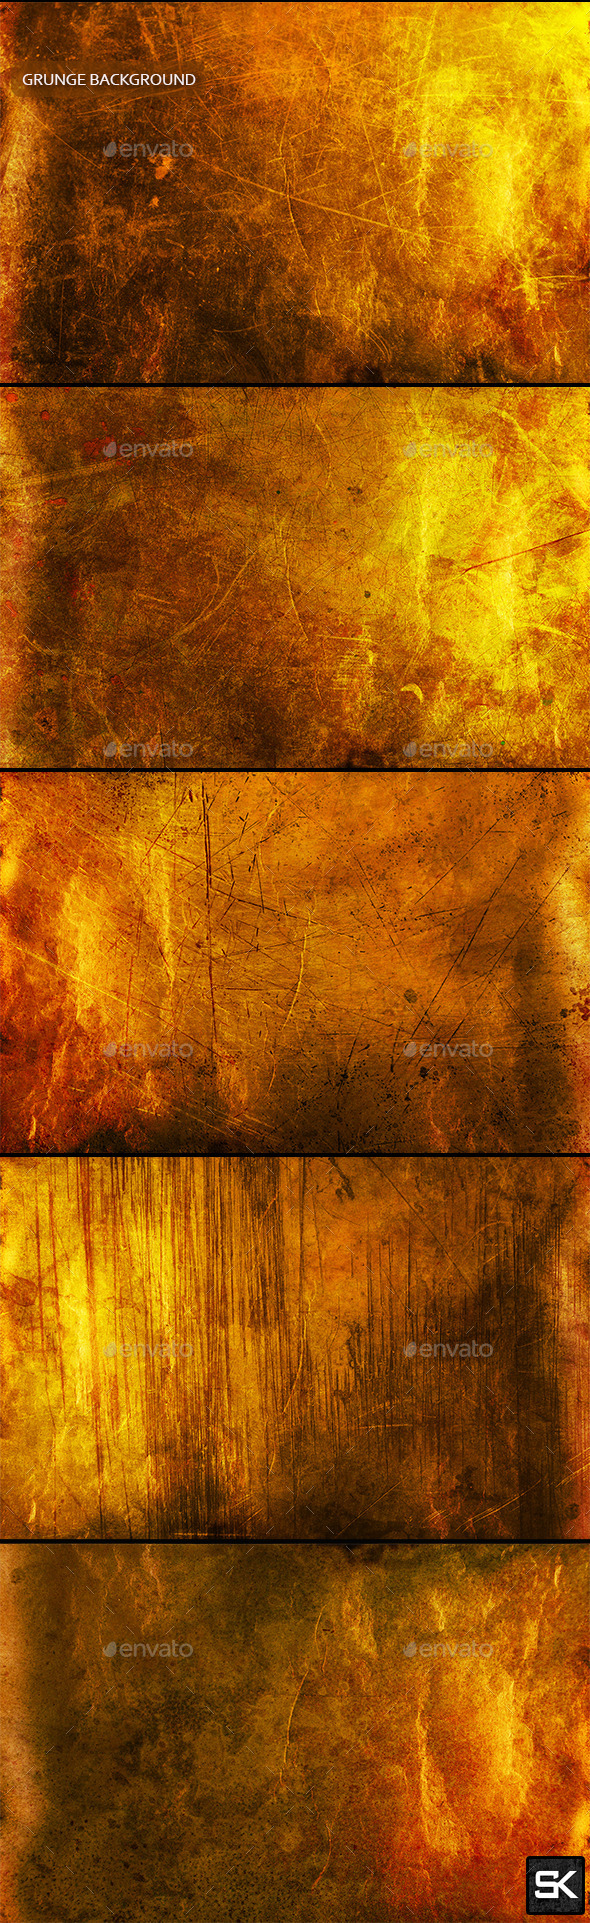 Grunge Background - Miscellaneous Backgrounds